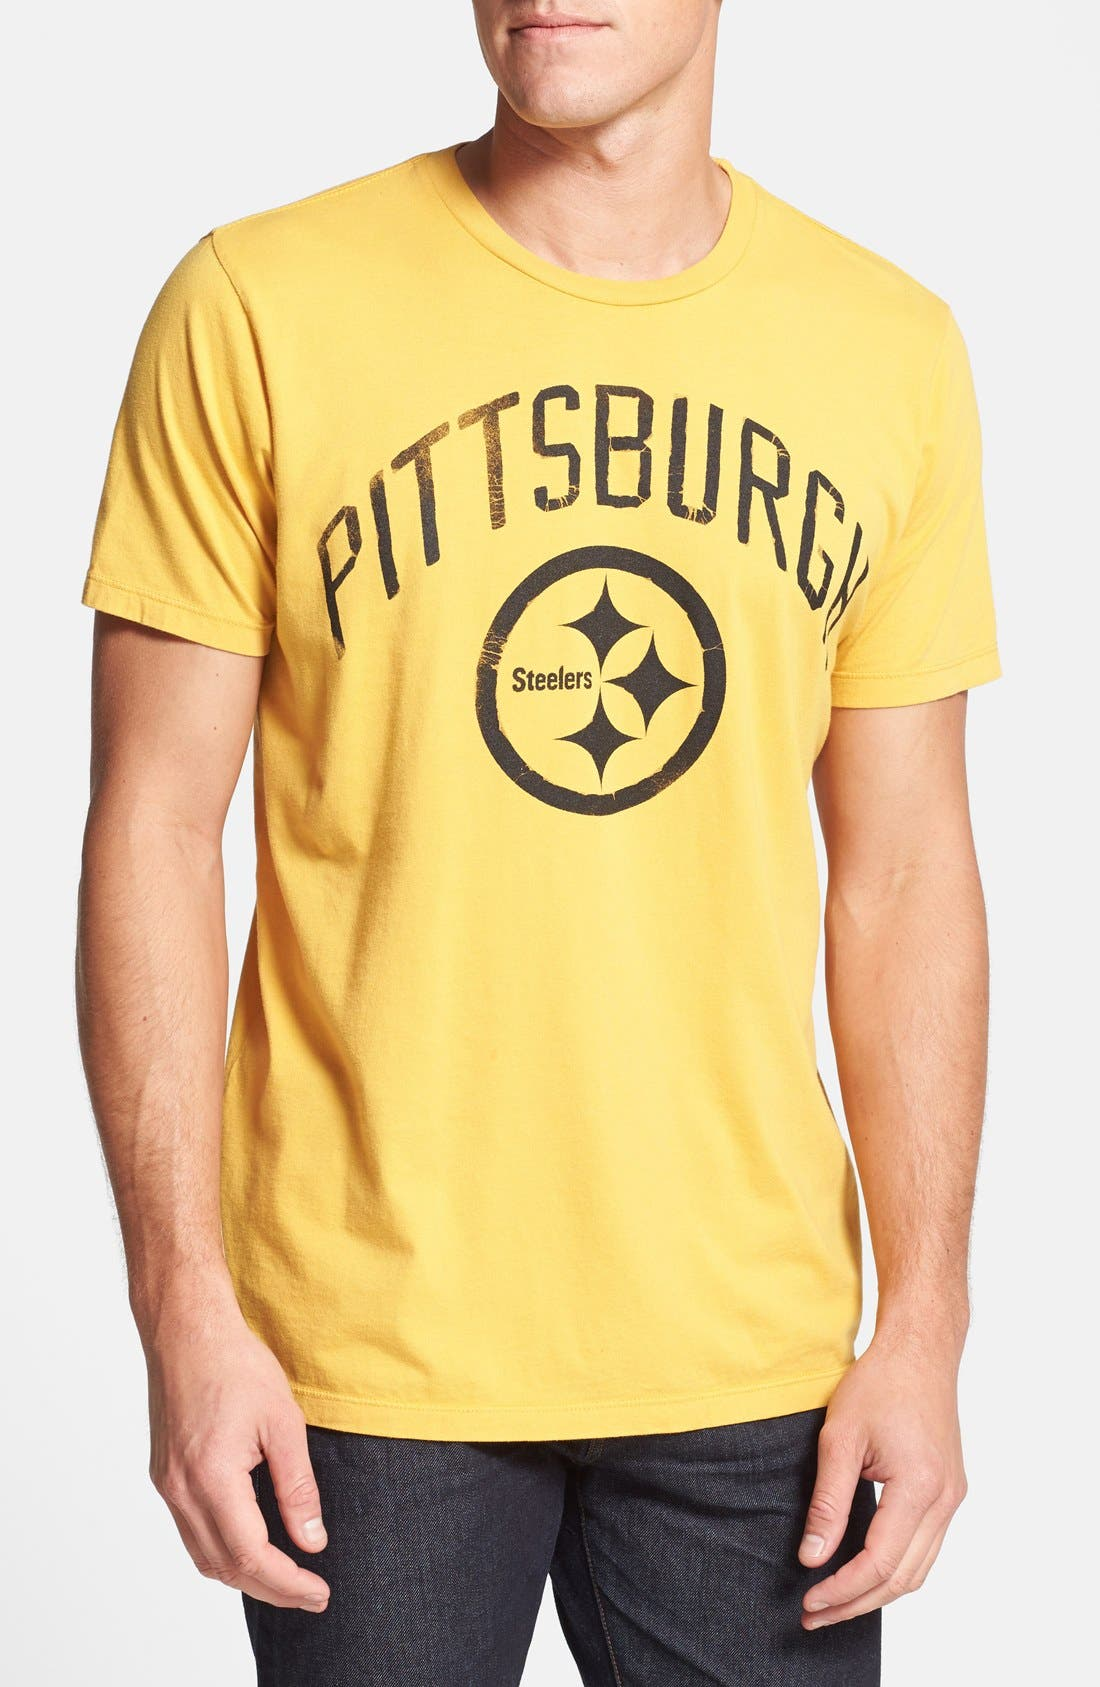 Alternate Image 1 Selected - Junk Food 'Pittsburgh Steelers' Graphic T-Shirt